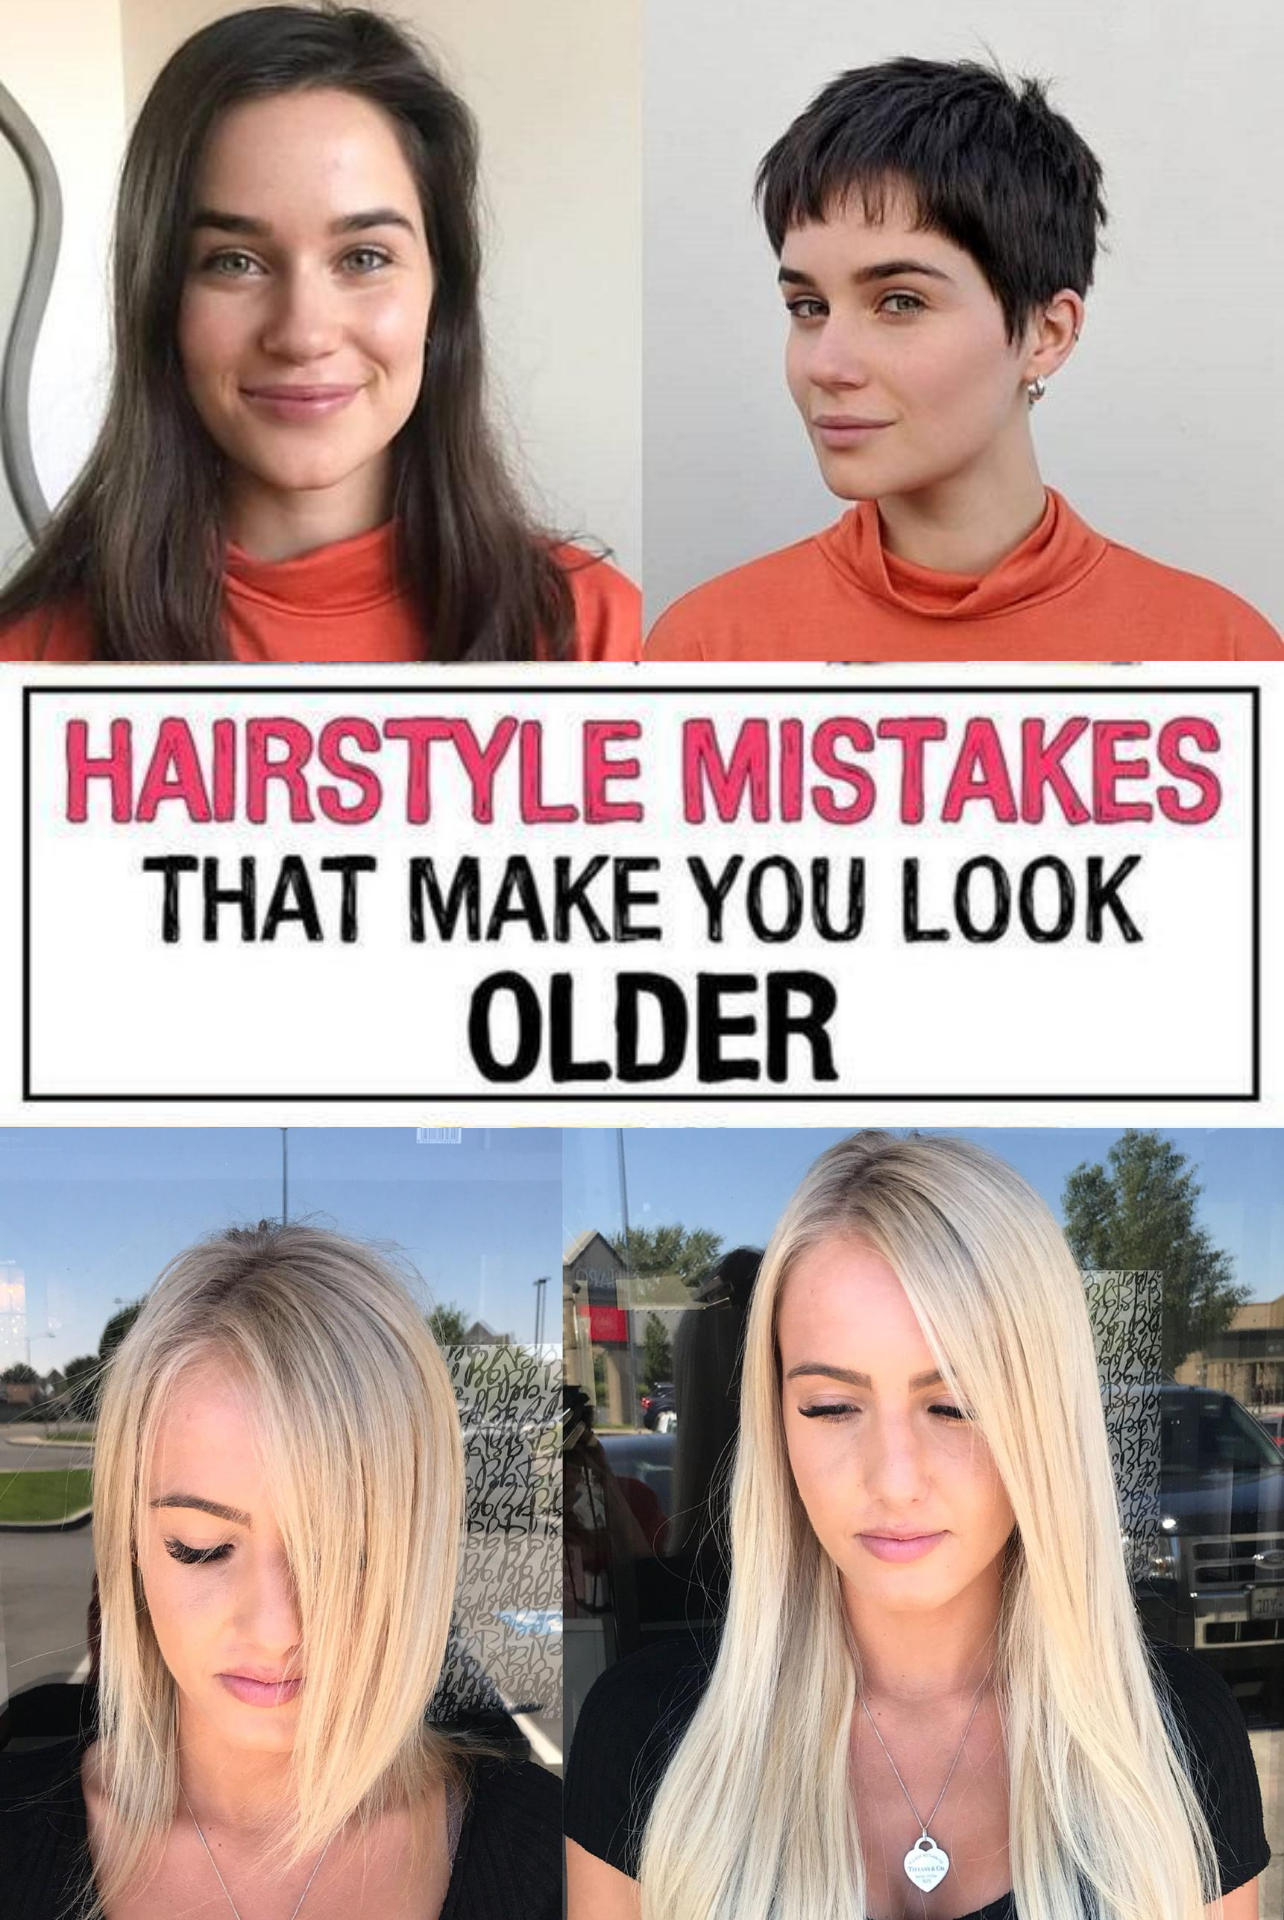 37 Hairstyle Mistakes That Are Aging You In 2020 Hairstyle Mom Hairstyles Hair Advice